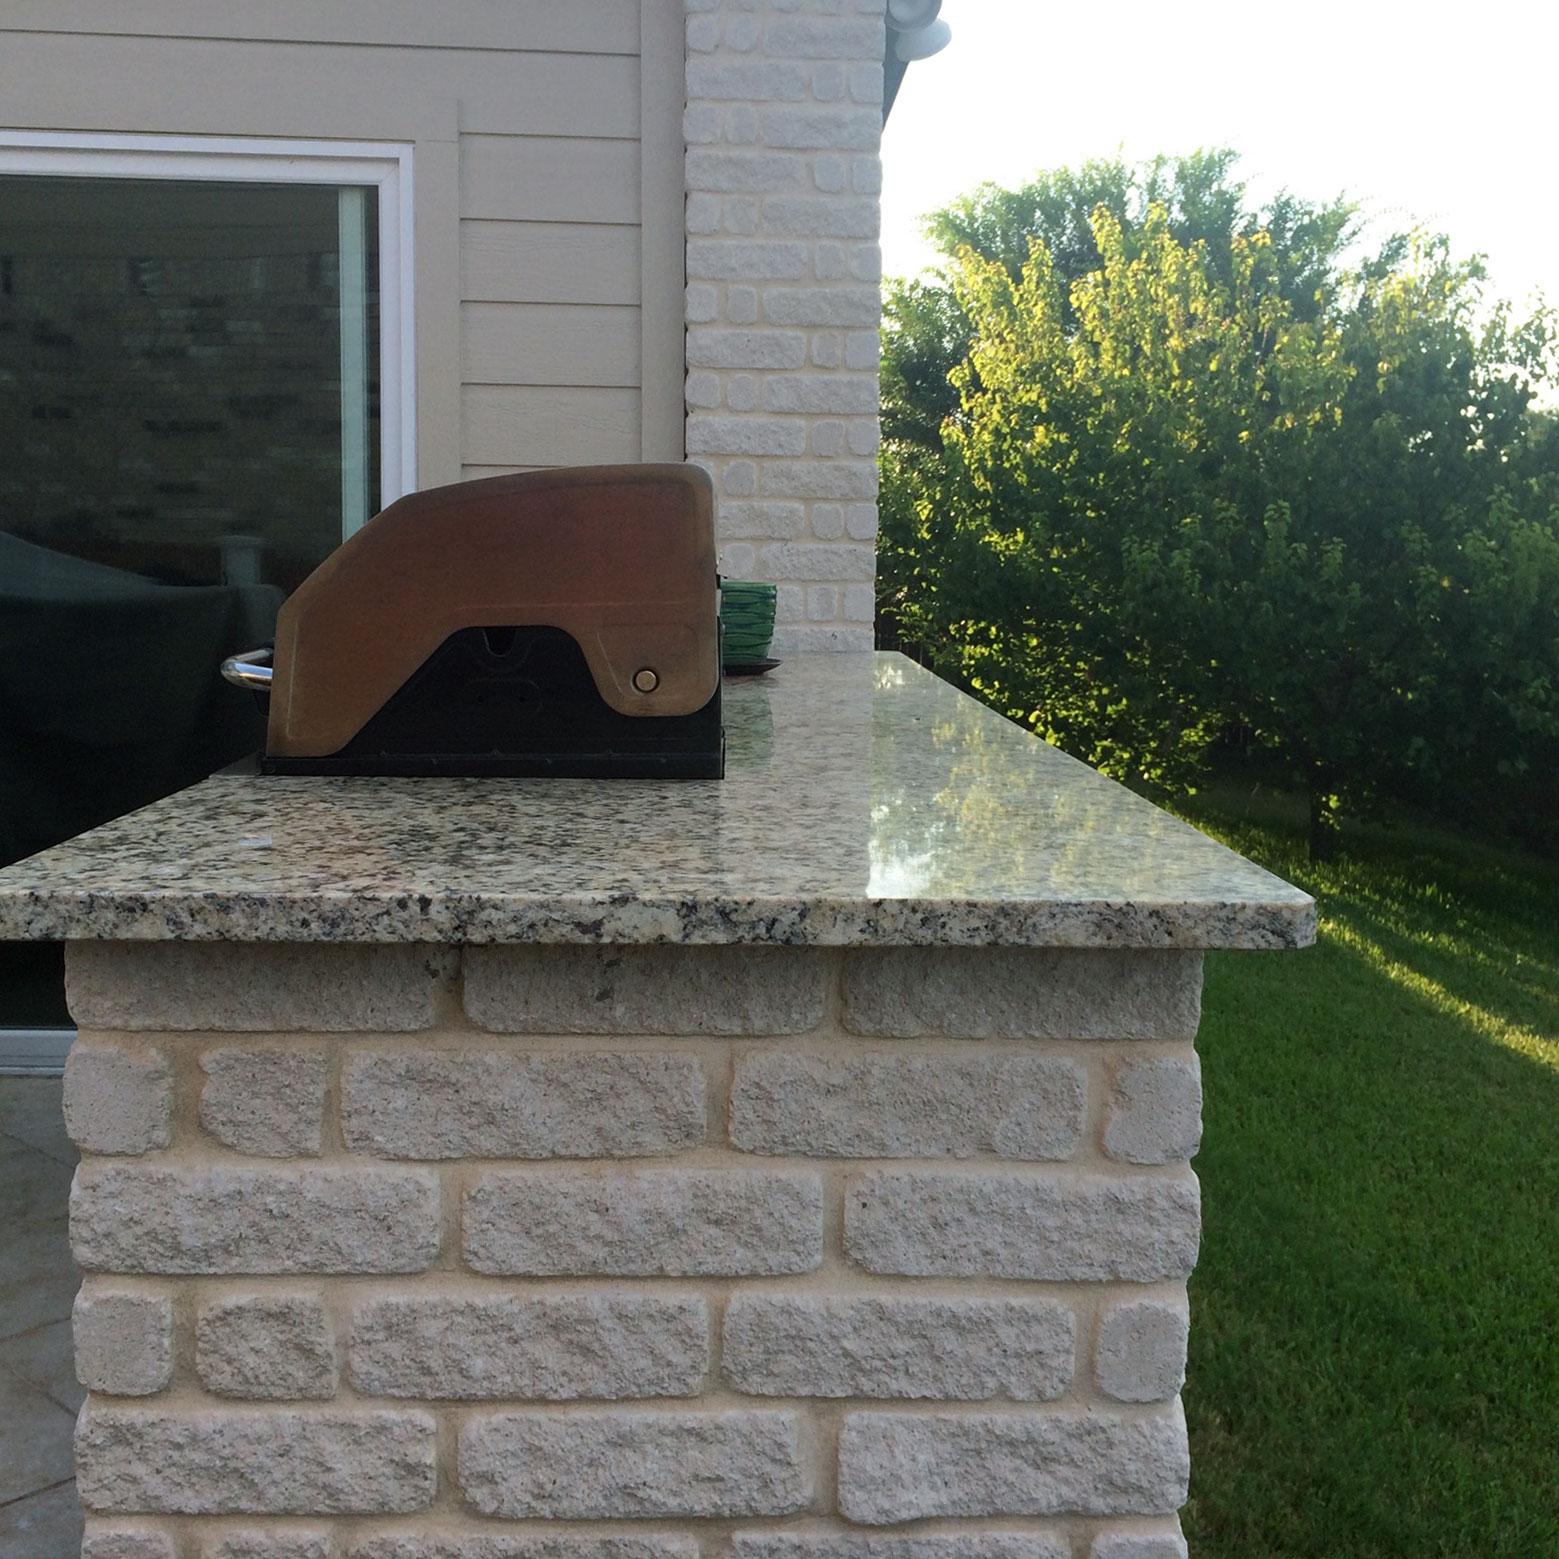 Granite Countertop and Outdoor Grill